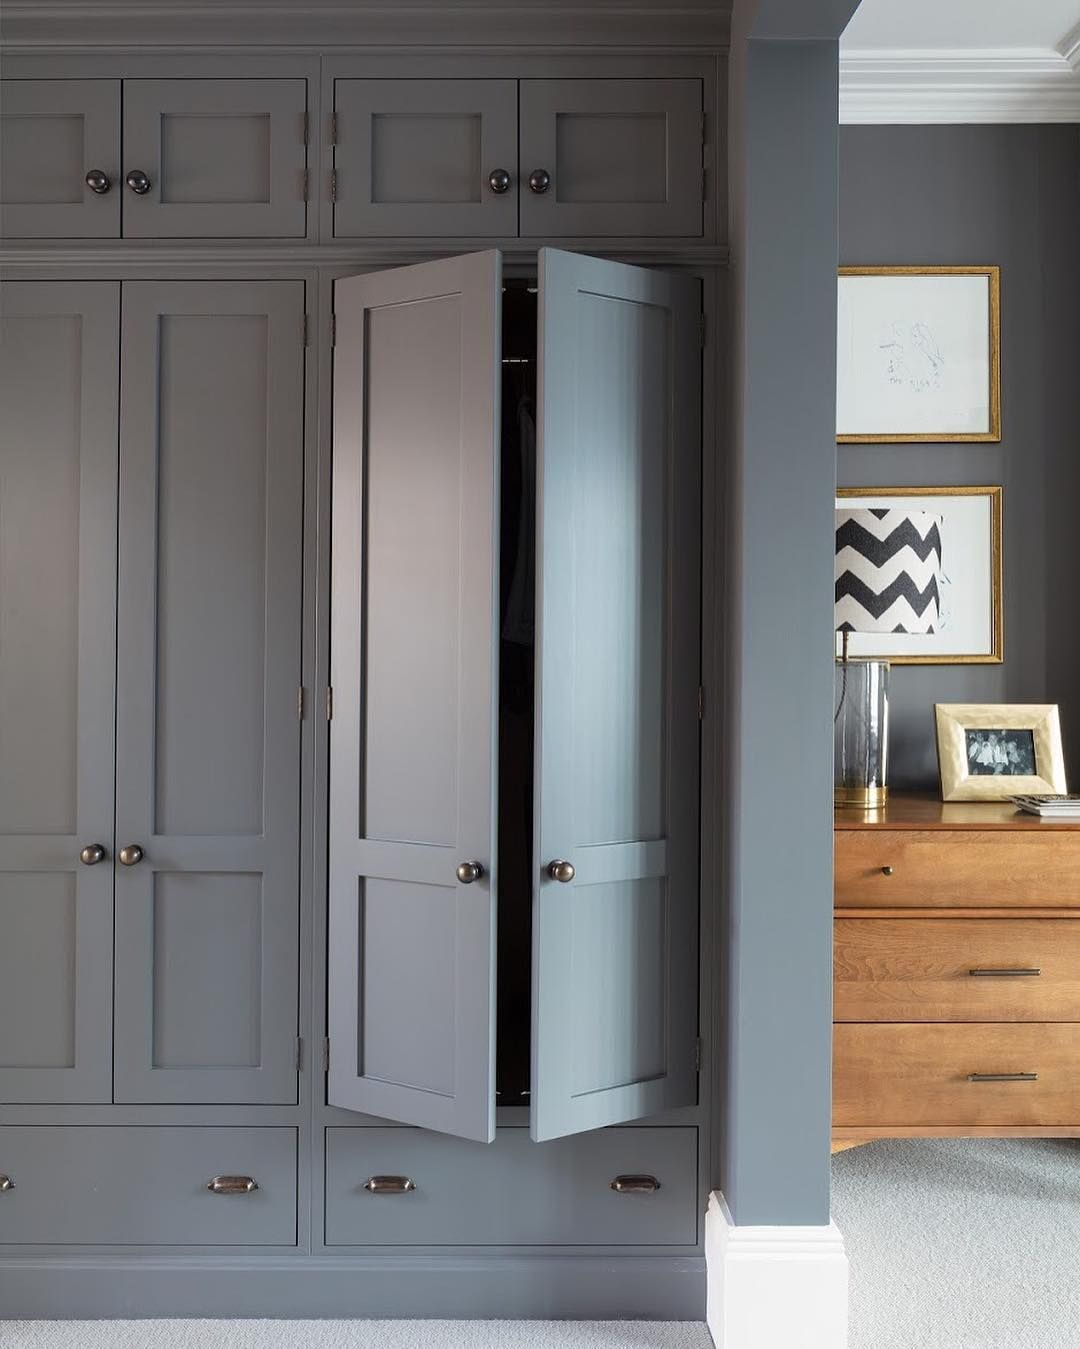 Bedroom furniture at the blackheath project with maldon cabinetry